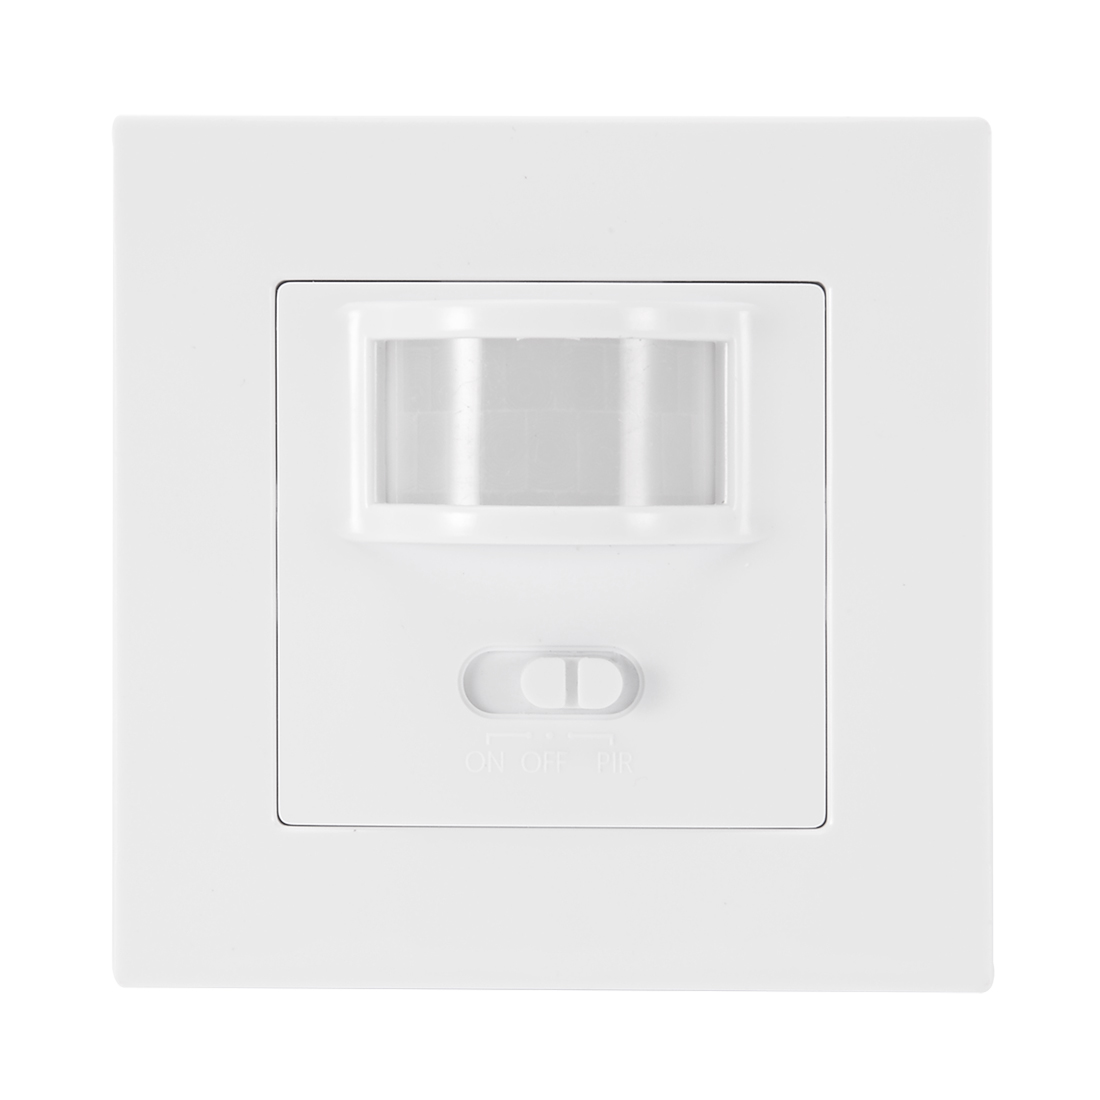 AC110V-240V Square Energy Saving Infrared IR Sensor Switch Motion Detector